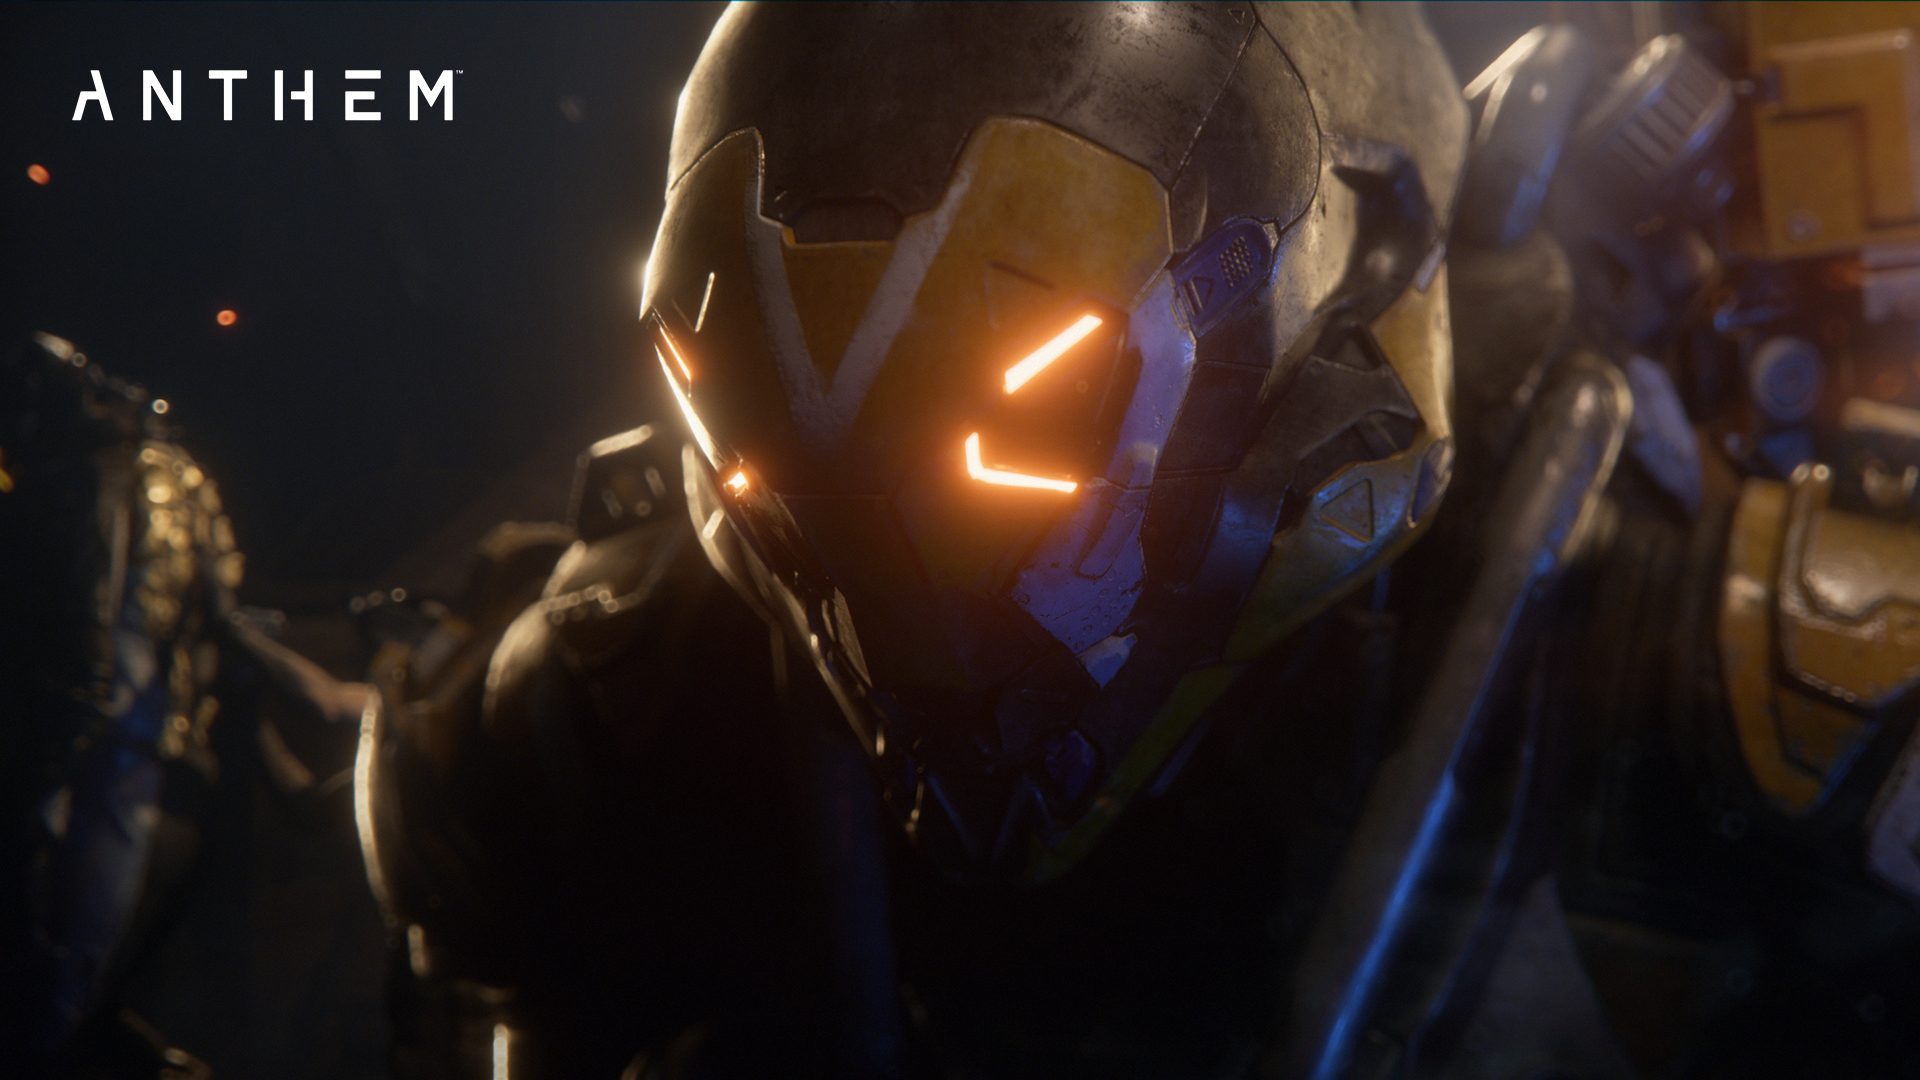 anthem-official-teaser-trailer.jpg.adapt.crop16x9.1920w